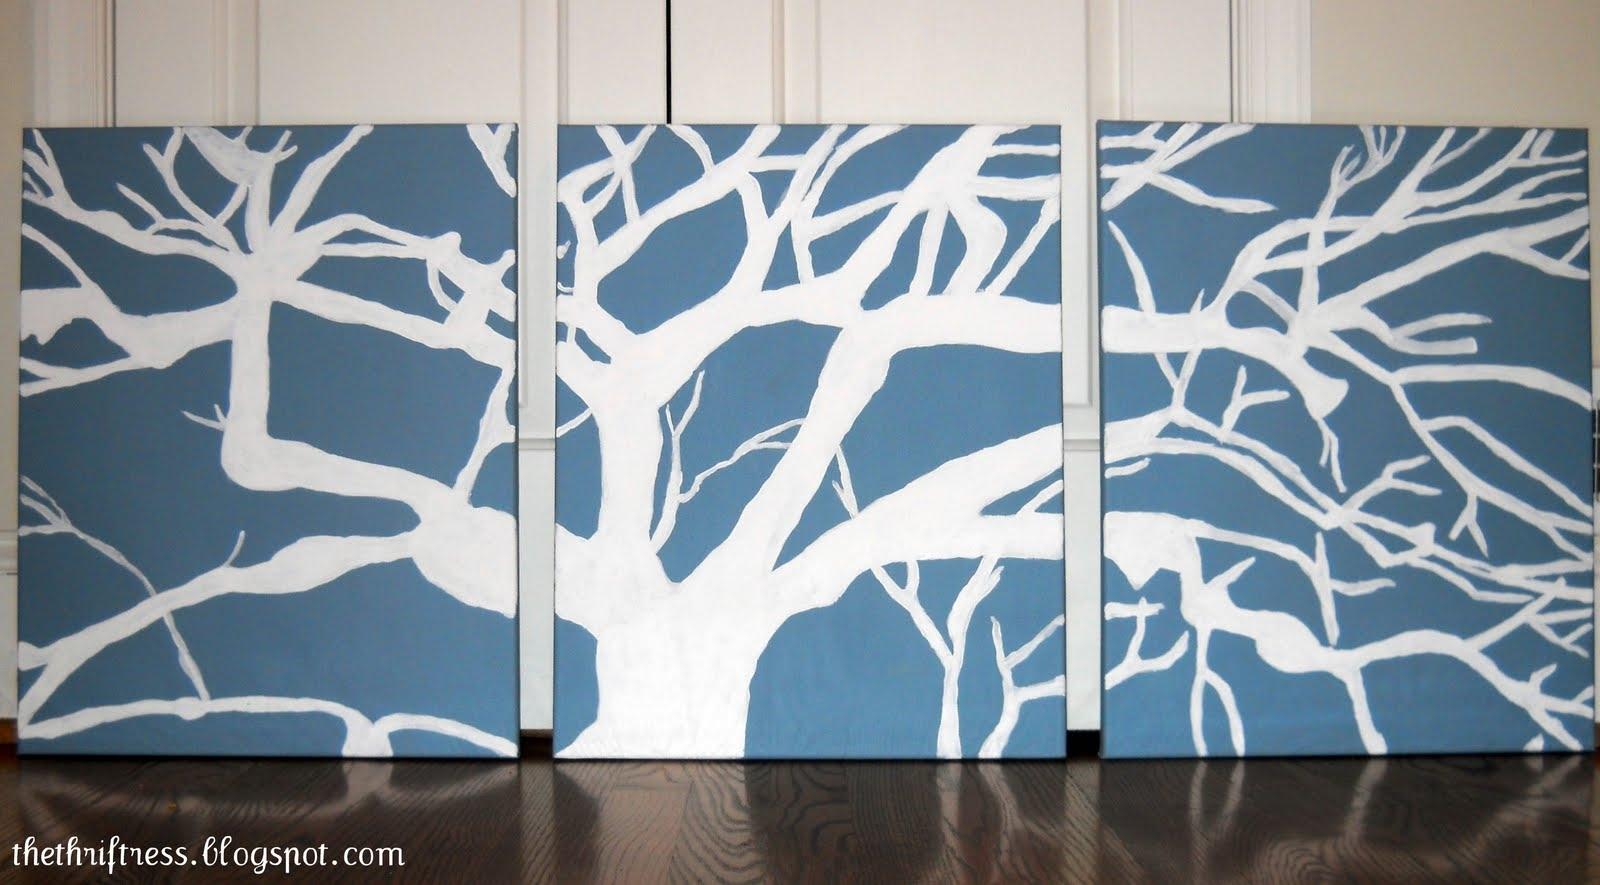 Diy Wall Art Stencils Paint Fabric – Dma Homes | #37854 For Most Up To Date Blue Fabric Wall Art (View 3 of 15)